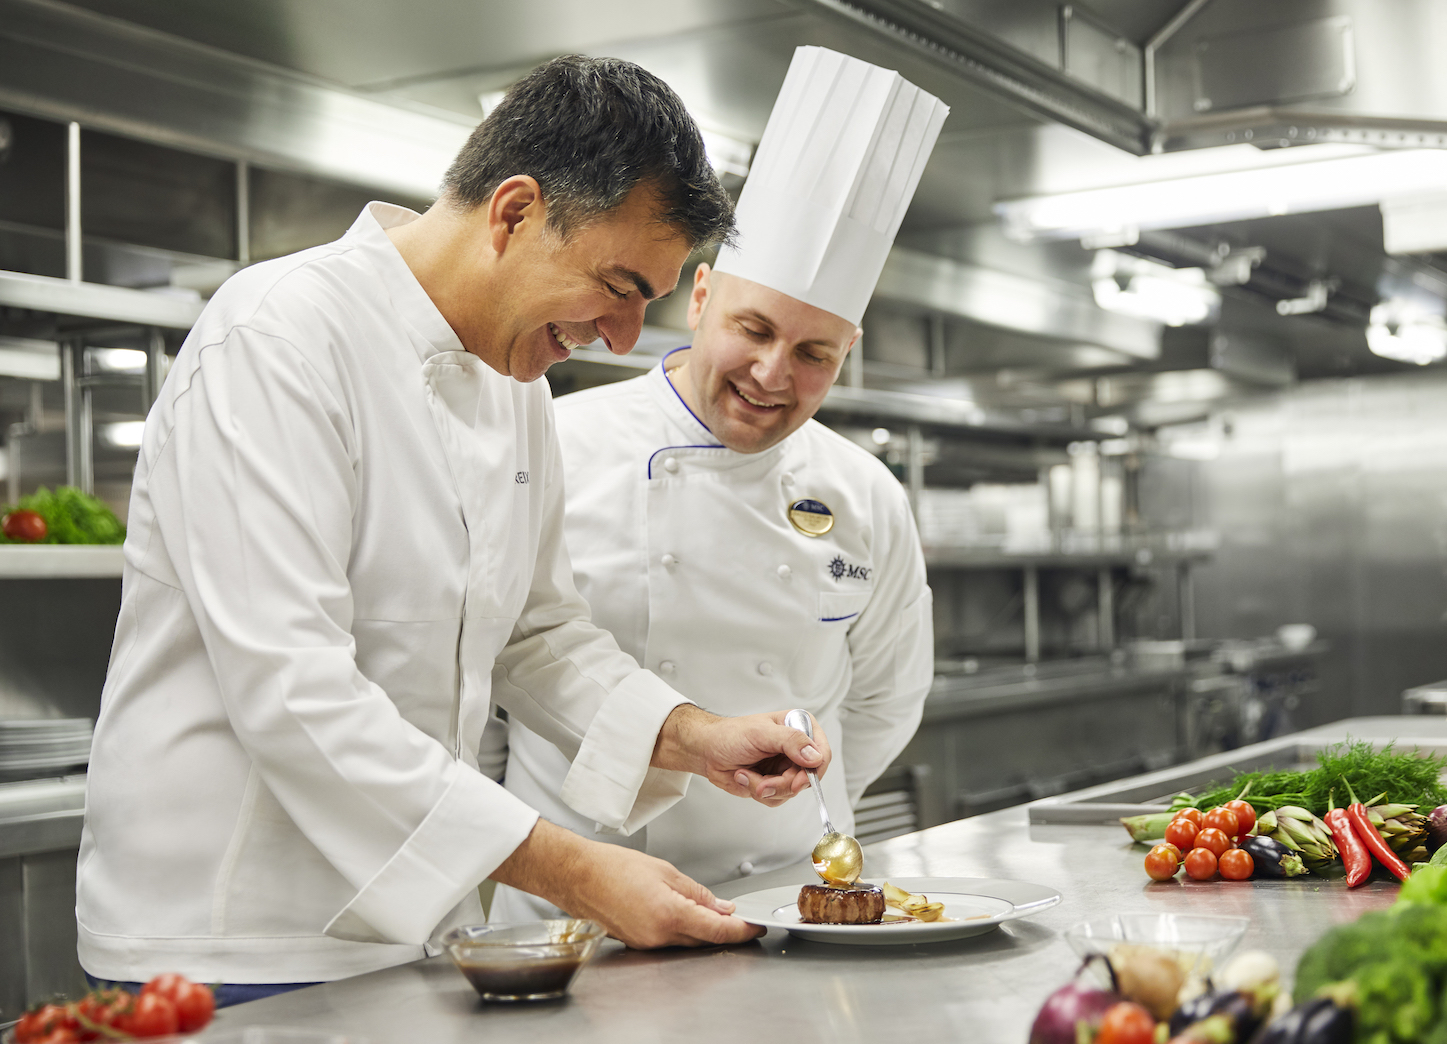 What We Can Learn From Elite Chefs